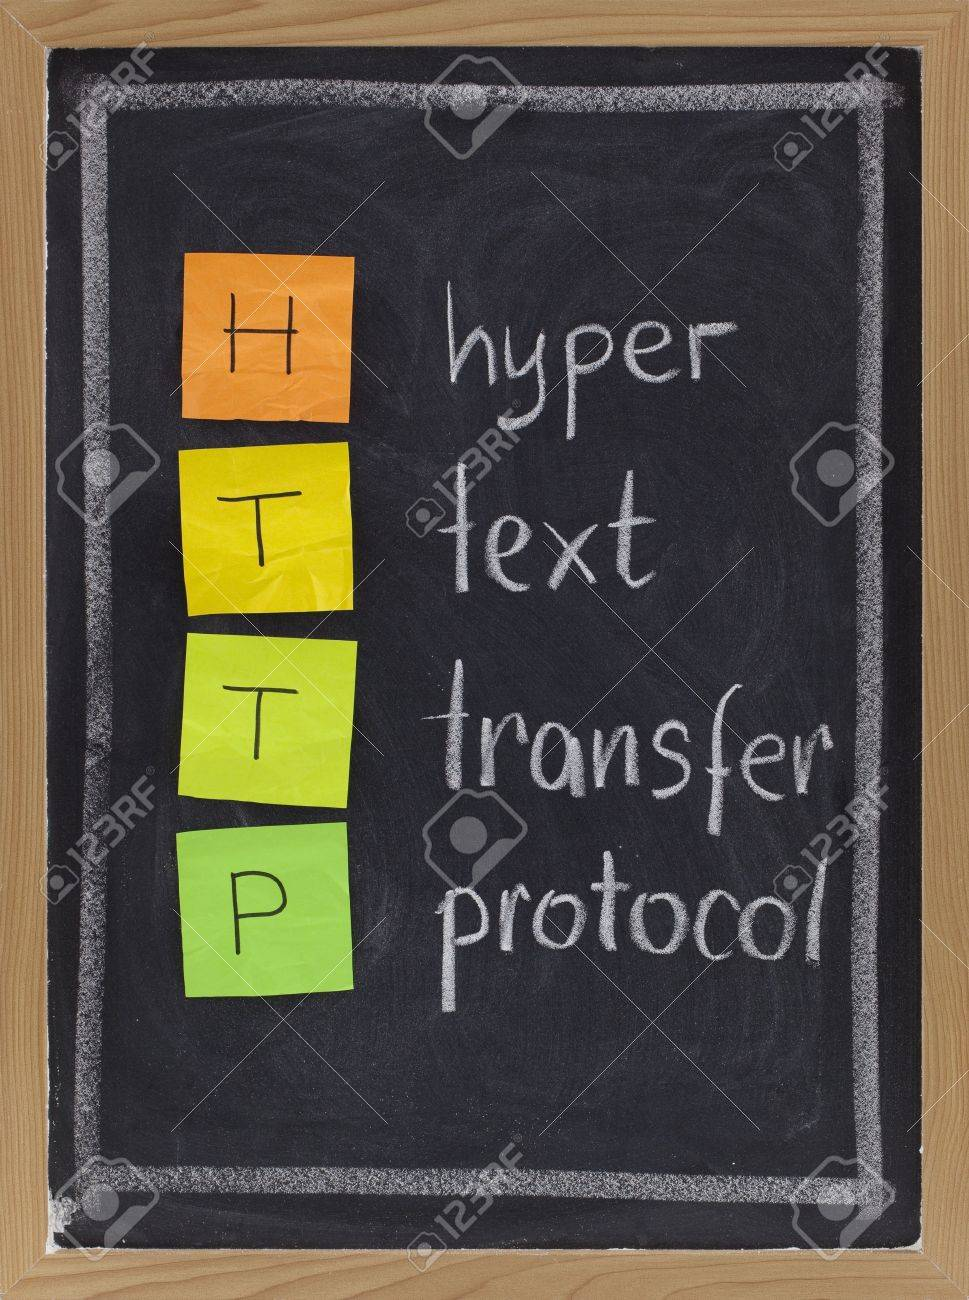 http (hyper text transfer protocol) acronym explained on blackboard, color sticky notes and white chalk handwriting Stock Photo - 5908268